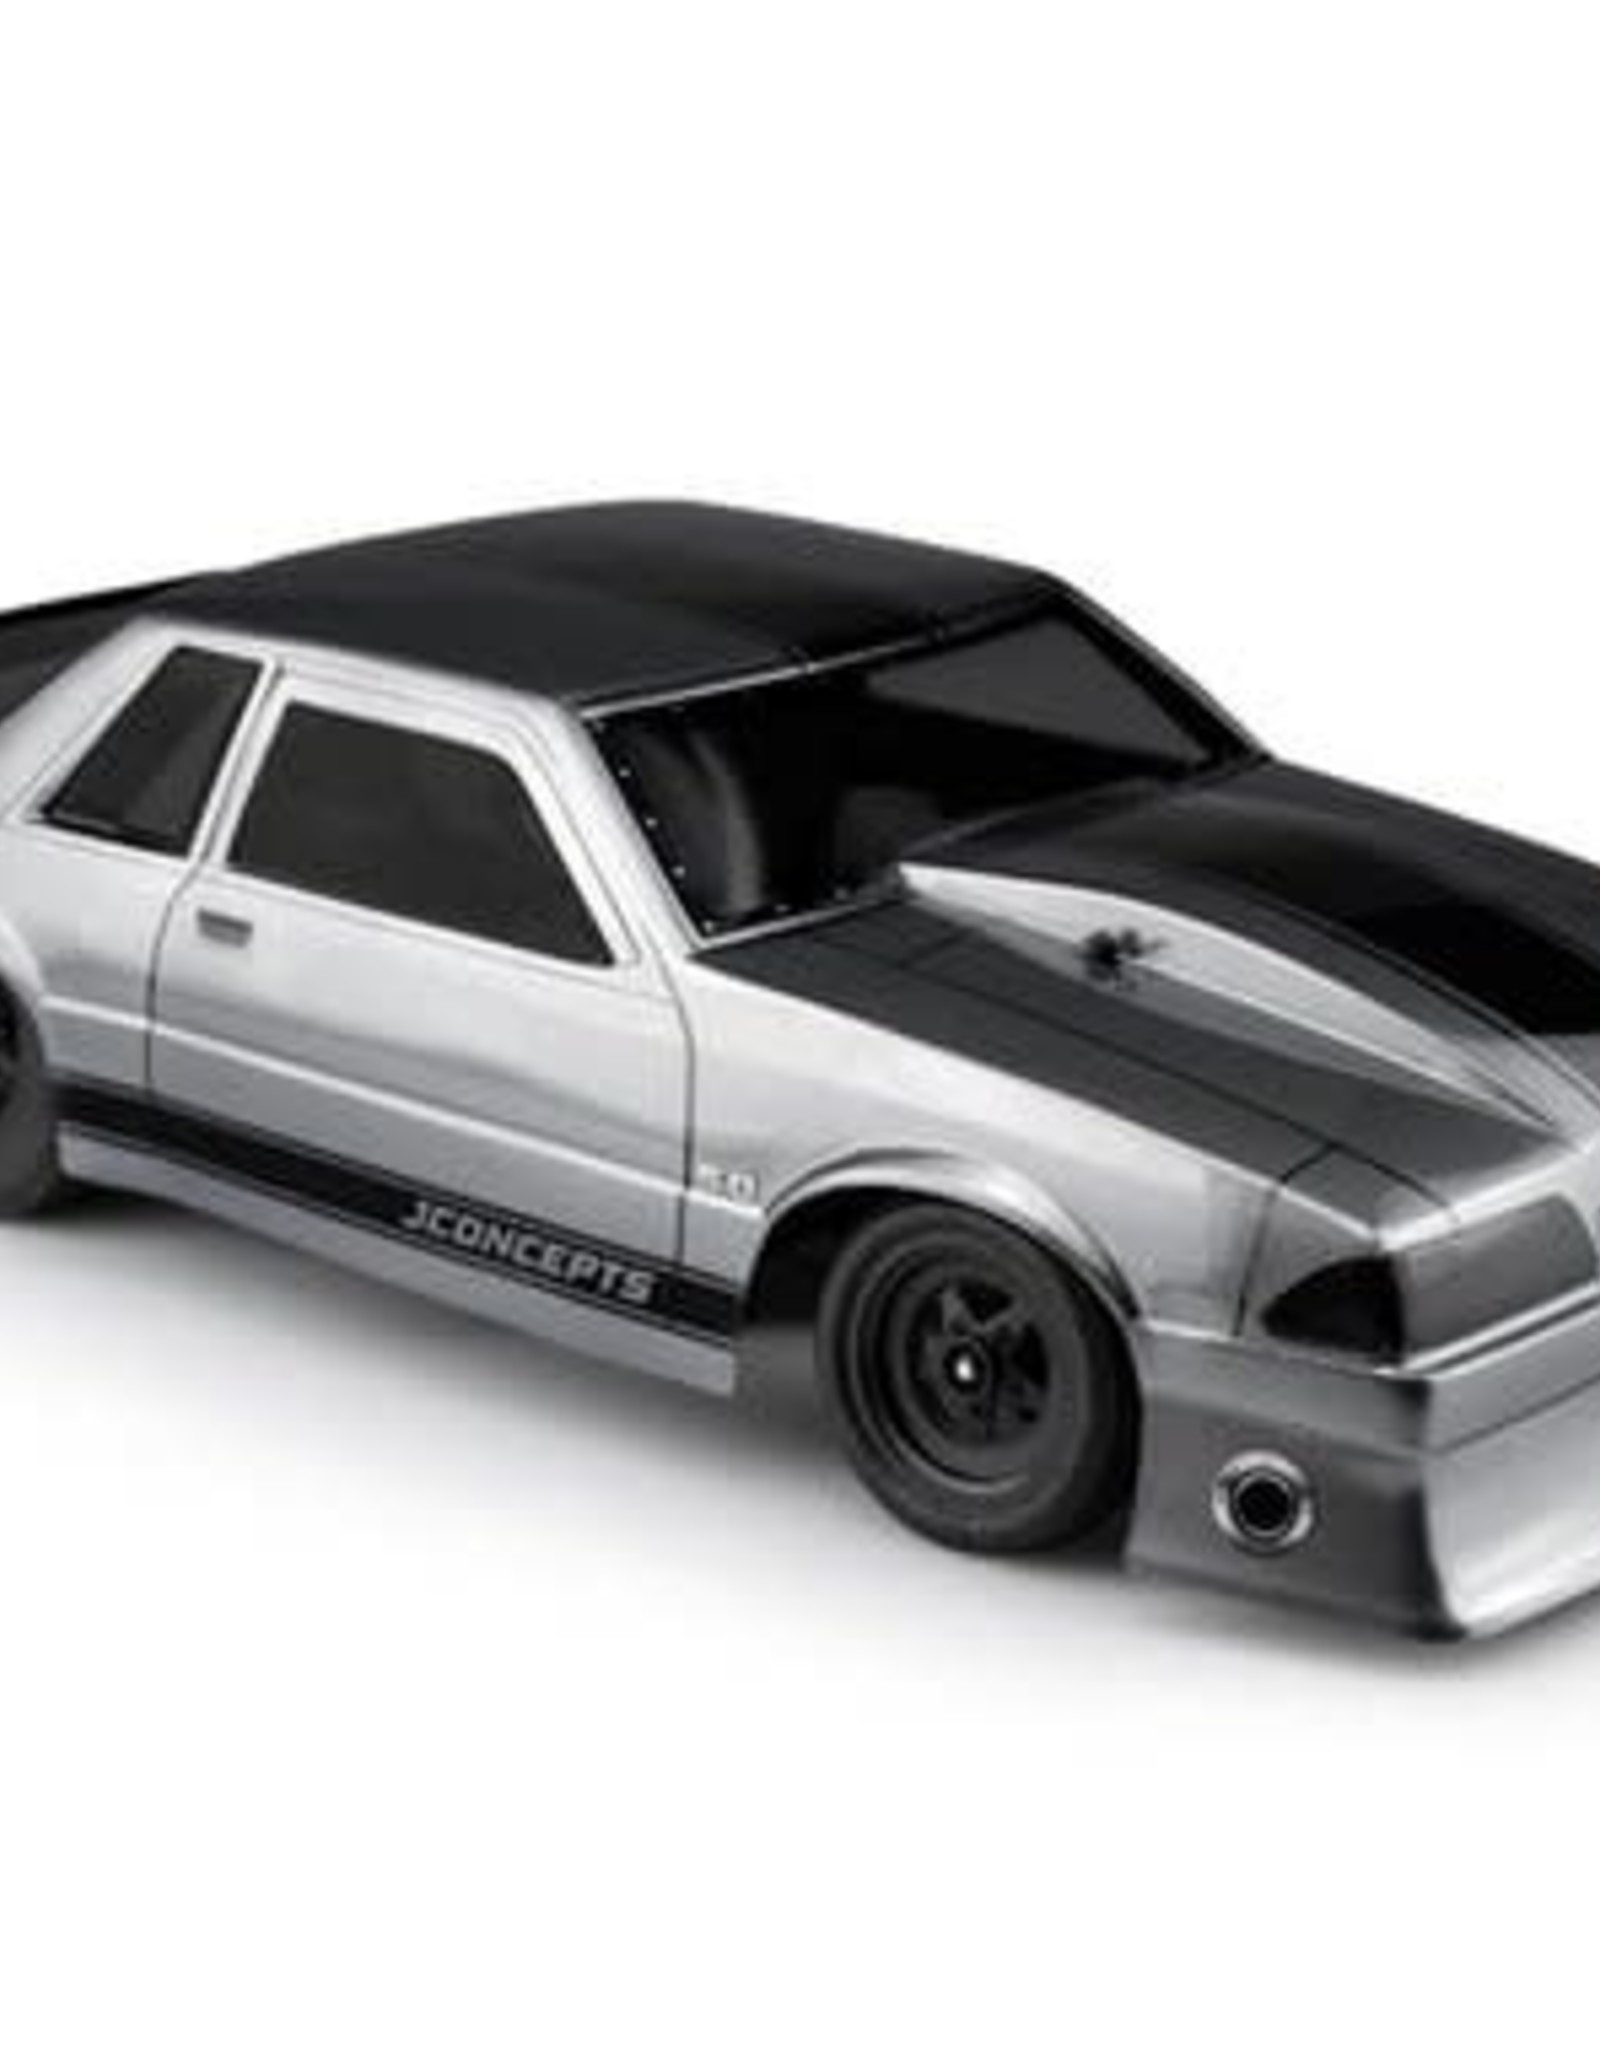 JConcepts JConcepts 1991 Ford Mustang Fox Body Street Eliminator Drag Racing Body (Clear)